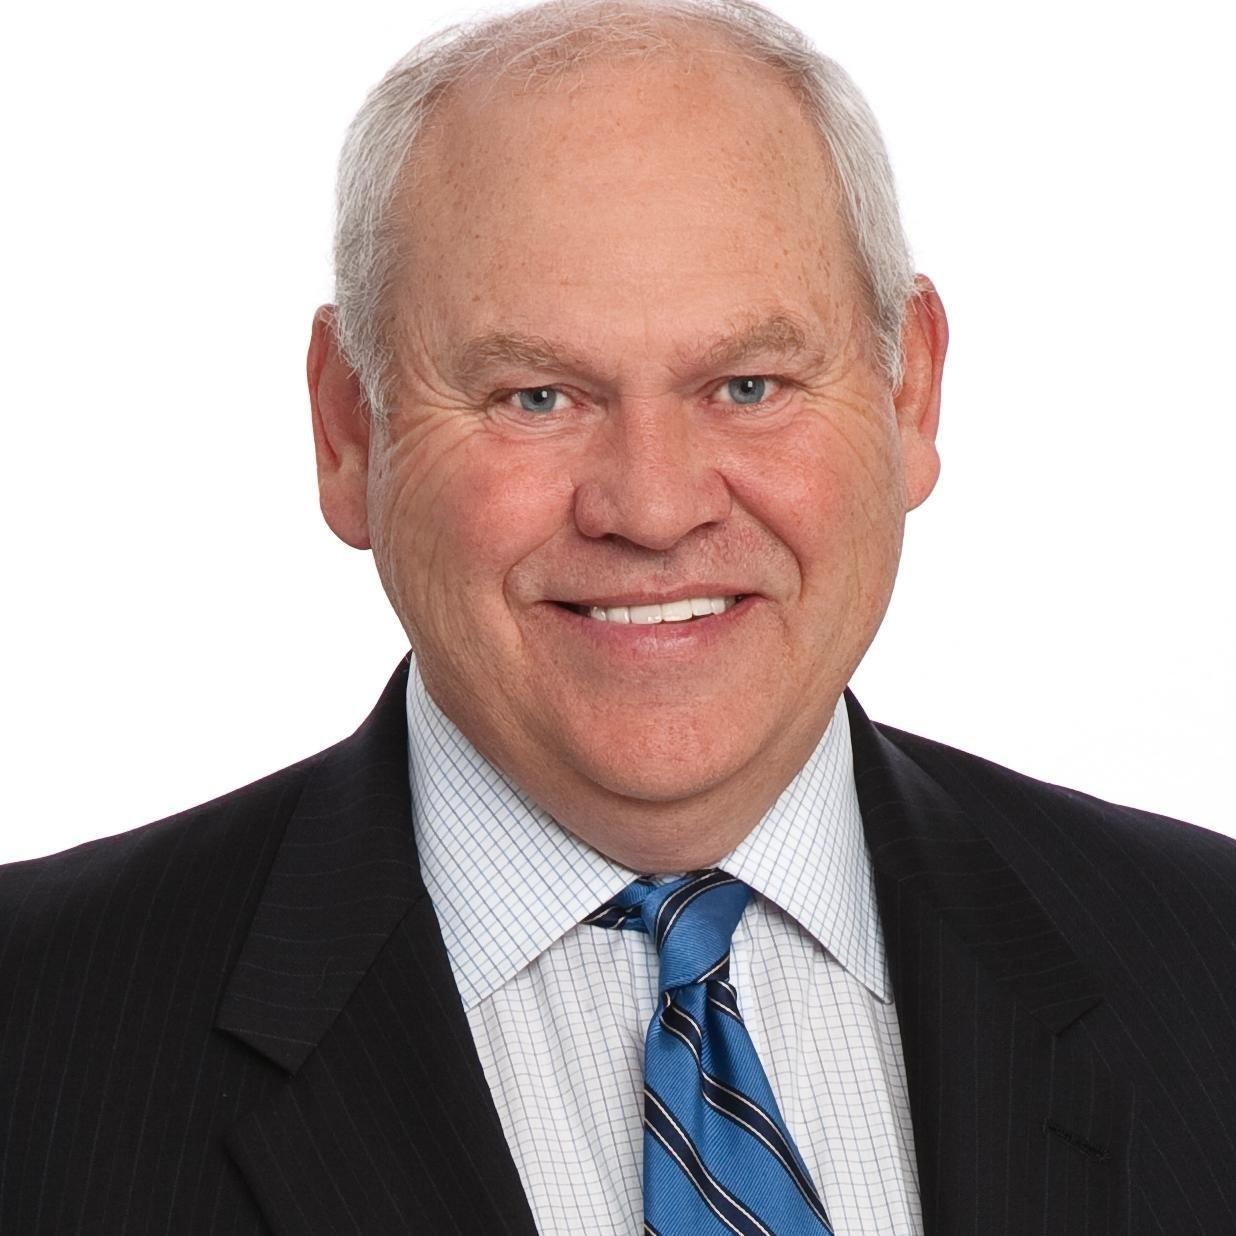 UT's Fulmer gets new contract